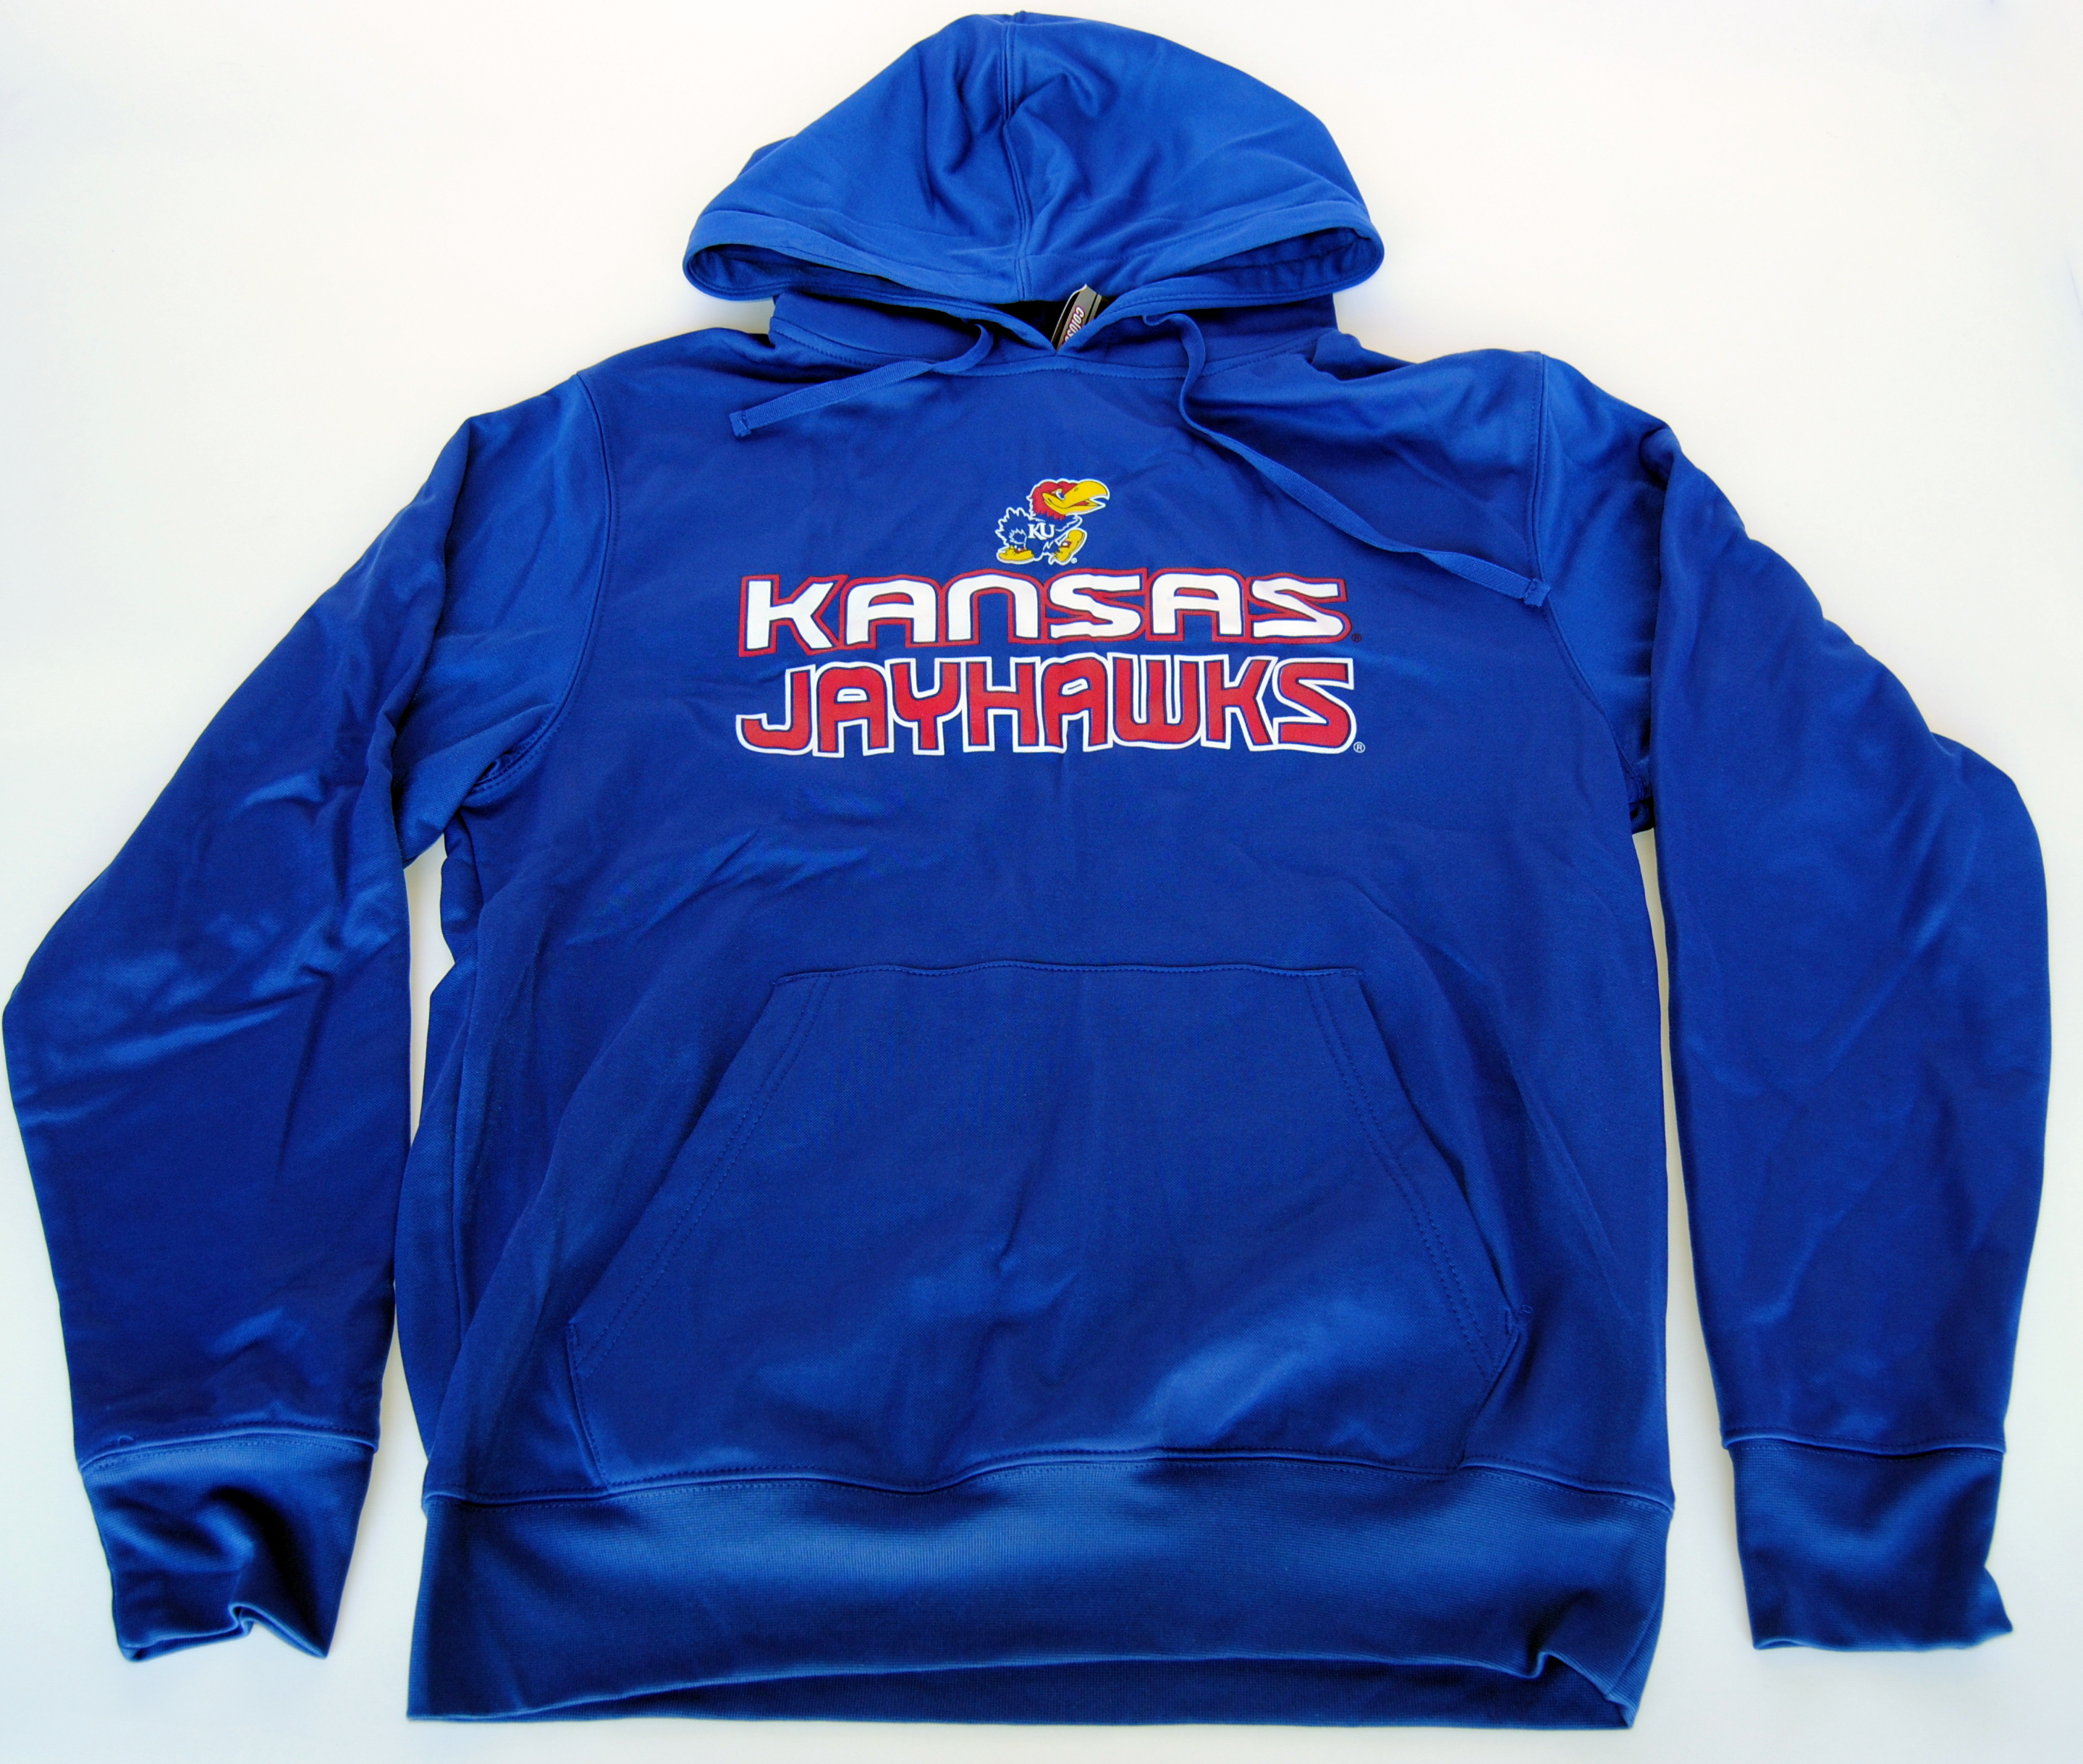 Colosseum Athletics Kansas Jayhawks Colosseum Athletics Blue Hooded Sweatshirt (L) at Sears.com